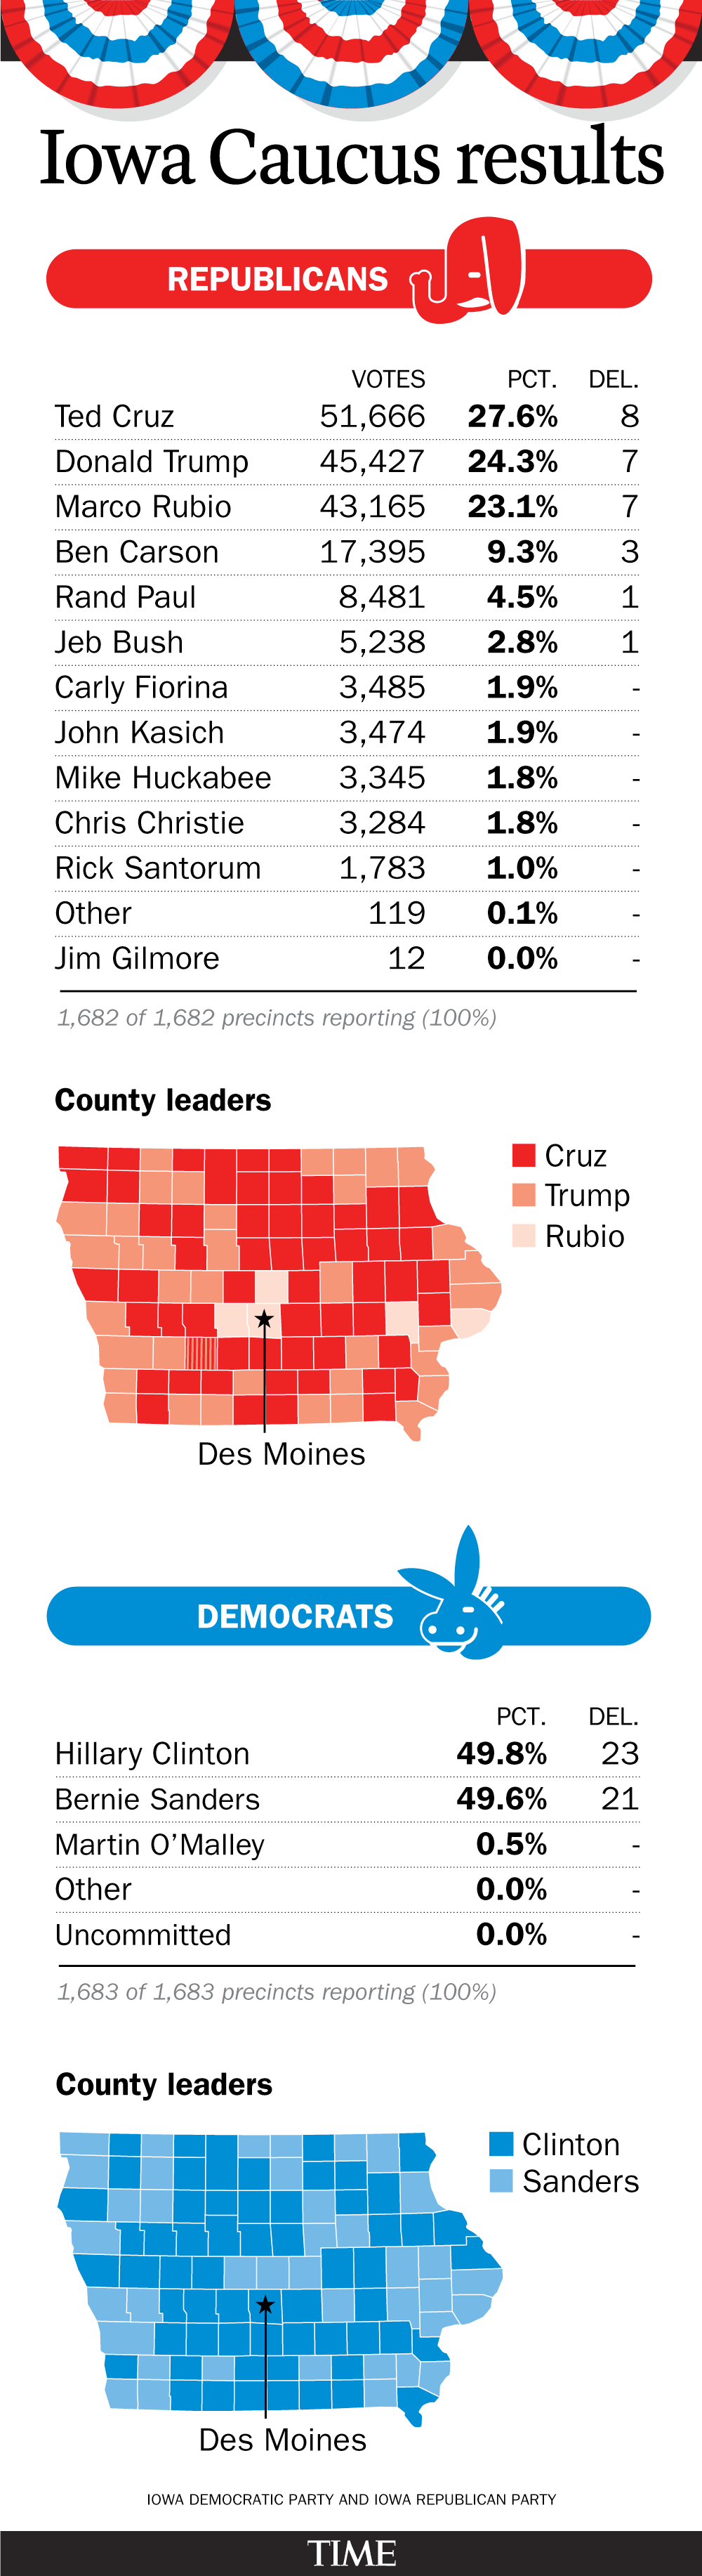 Iowa Caucus results 2016